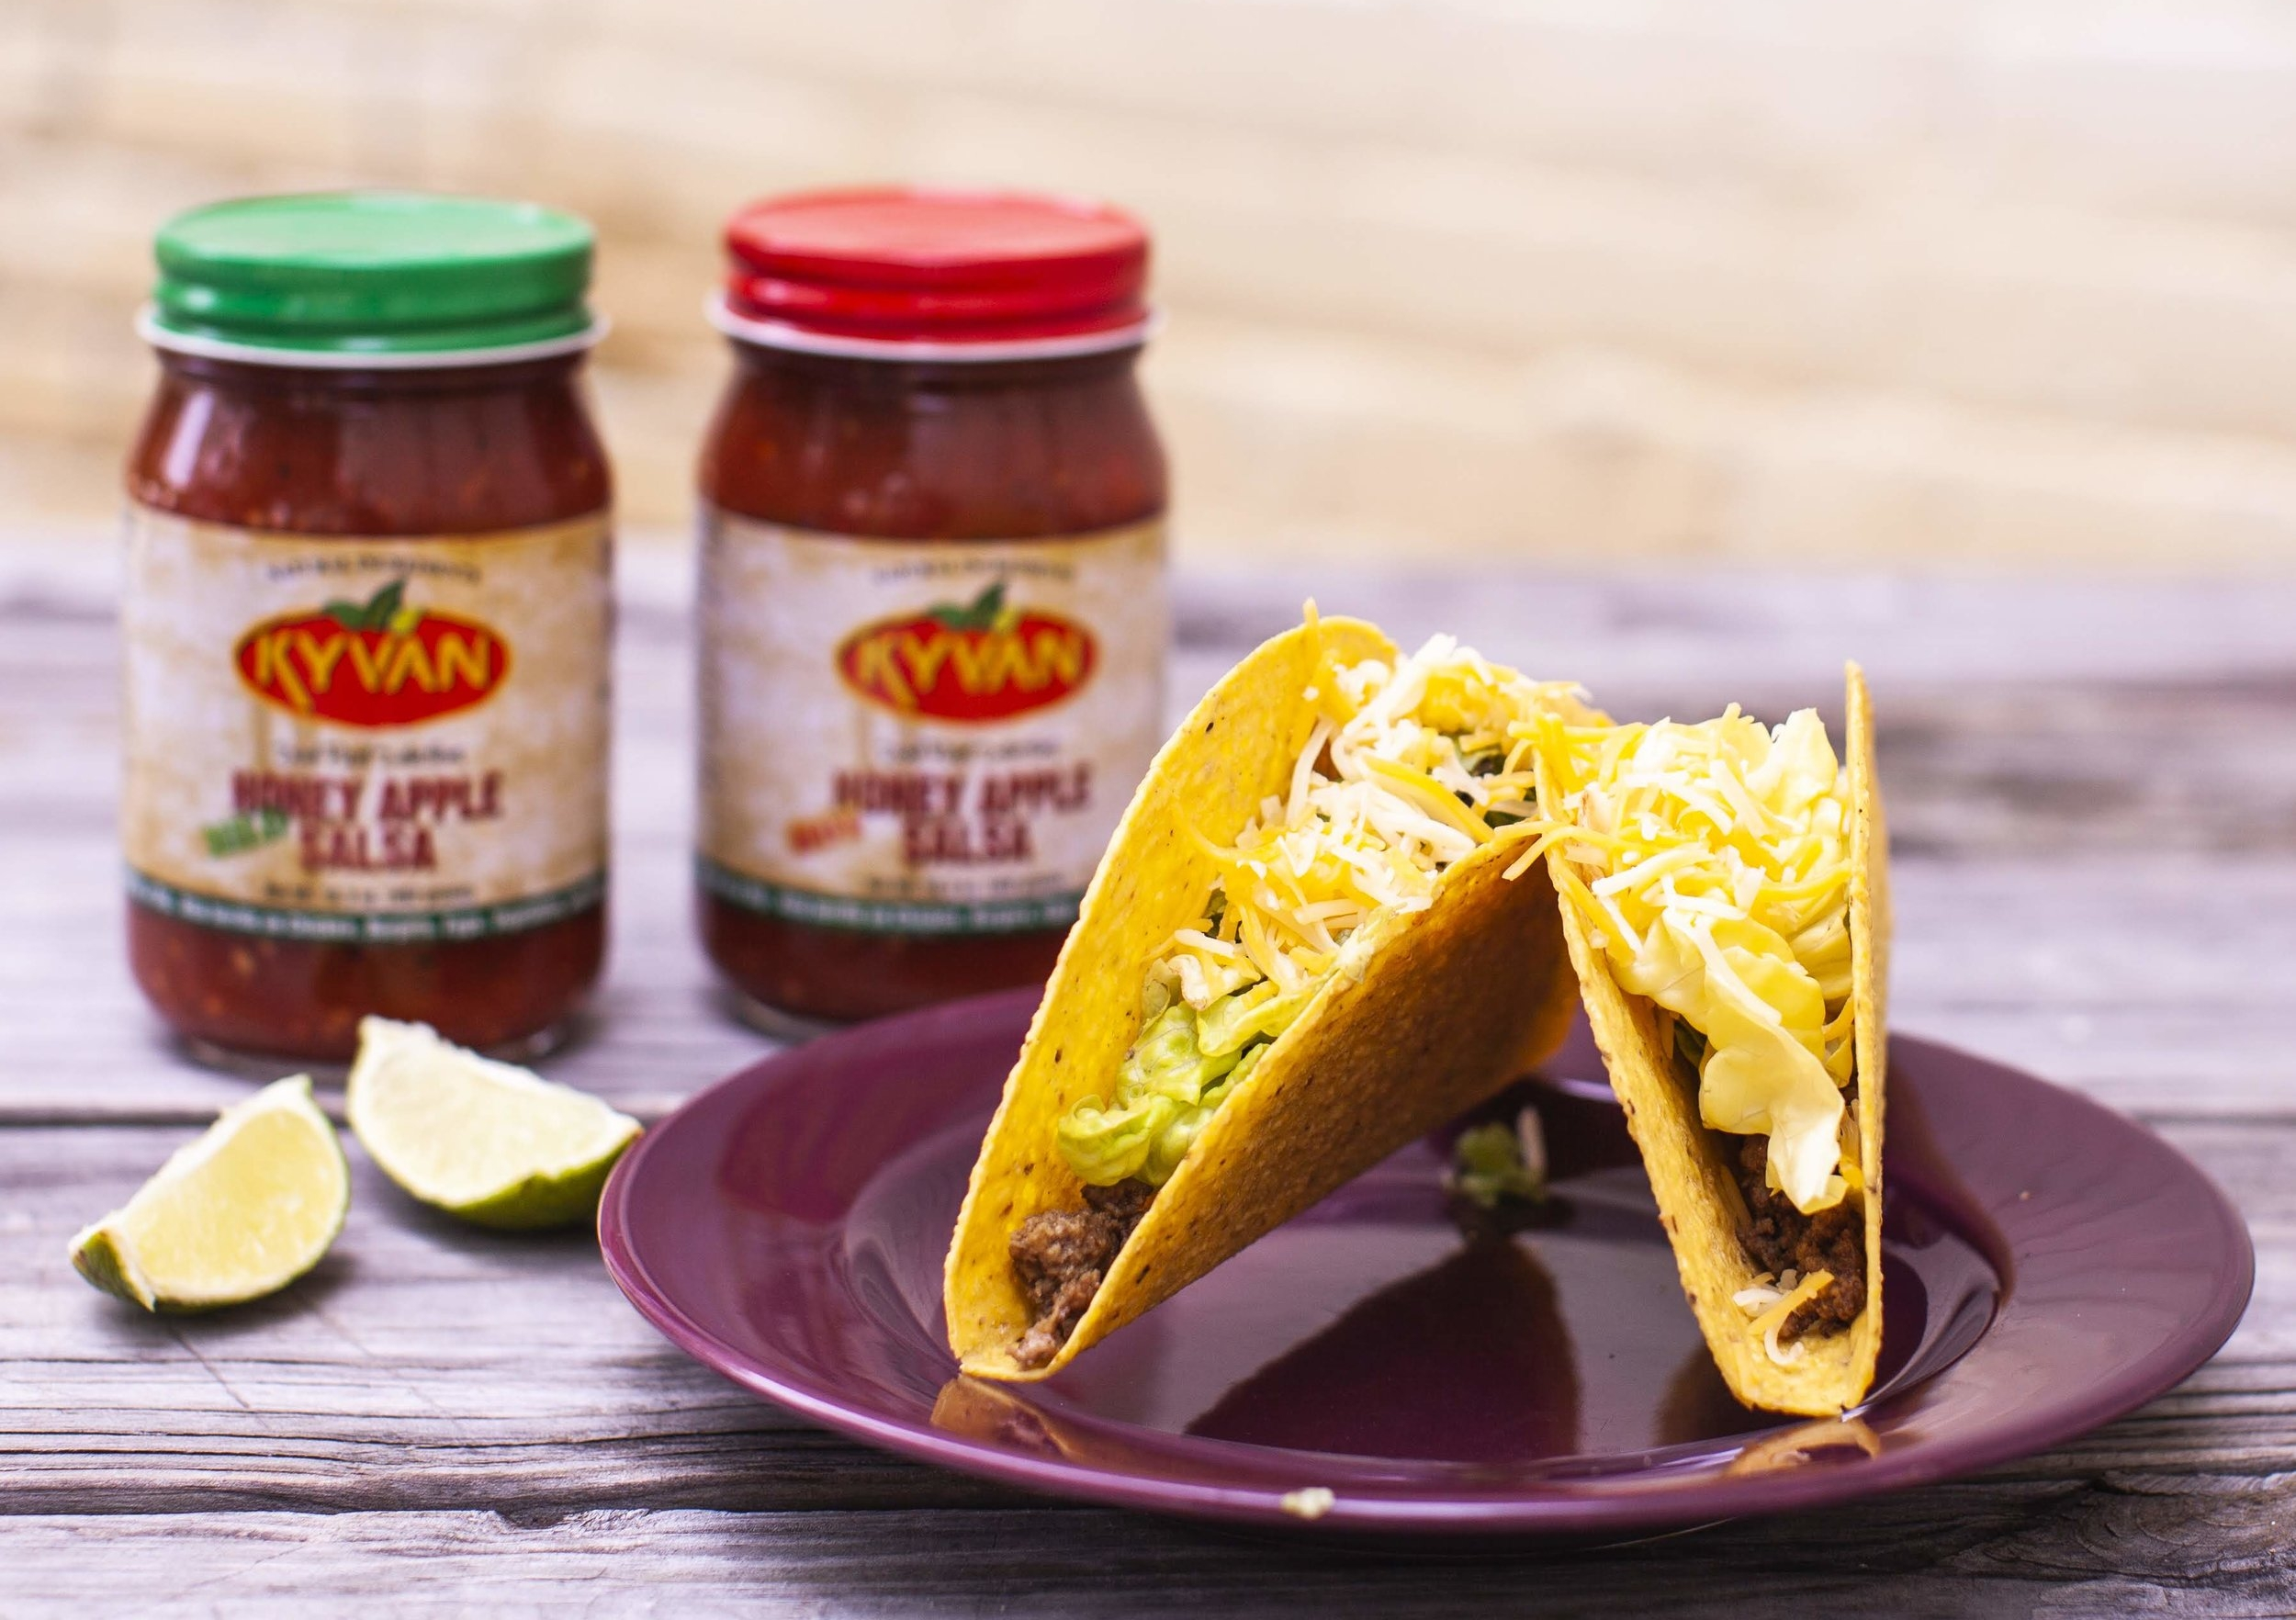 KYVAN Foods, specialty salsas and sauces created by Reggie Kelly from the NFL, Online Farmers Market